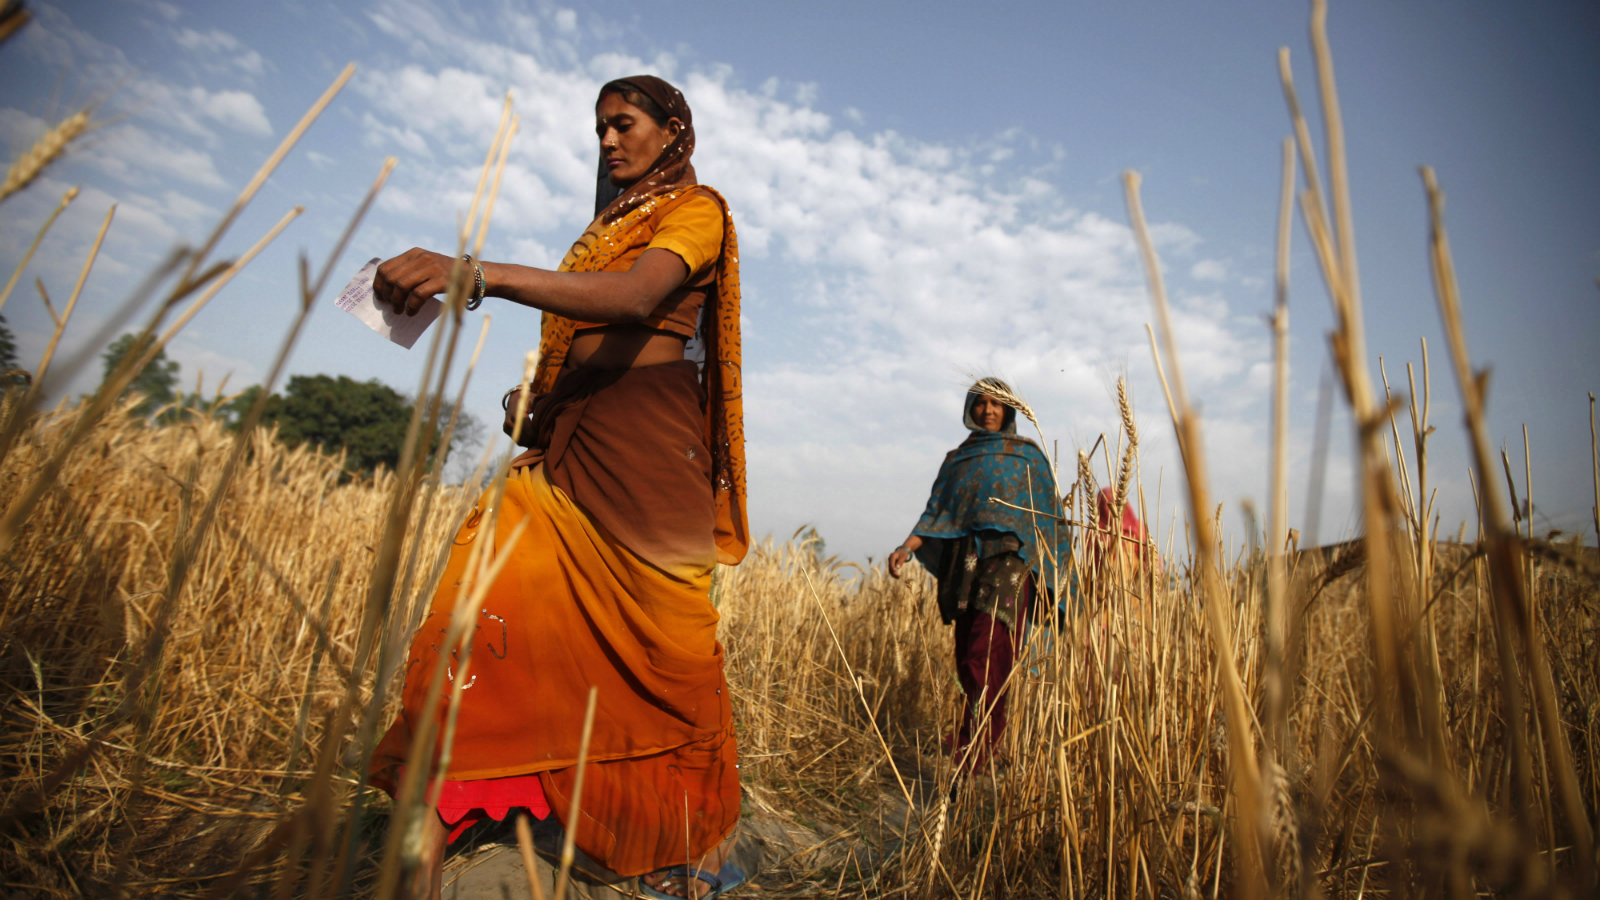 In this April 17, 2014 file photo, Indian village women walk through a rice field towards a polling station to cast their votes in Shahbazpur Dor village in Amroha, in the northern Indian state of Uttar Pradesh. As India faces certain water scarcity and ecological decline, the country's main political parties campaigning for elections have all but ignored environmental issues seen as crucial to India's vast rural majority, policy analysts say.